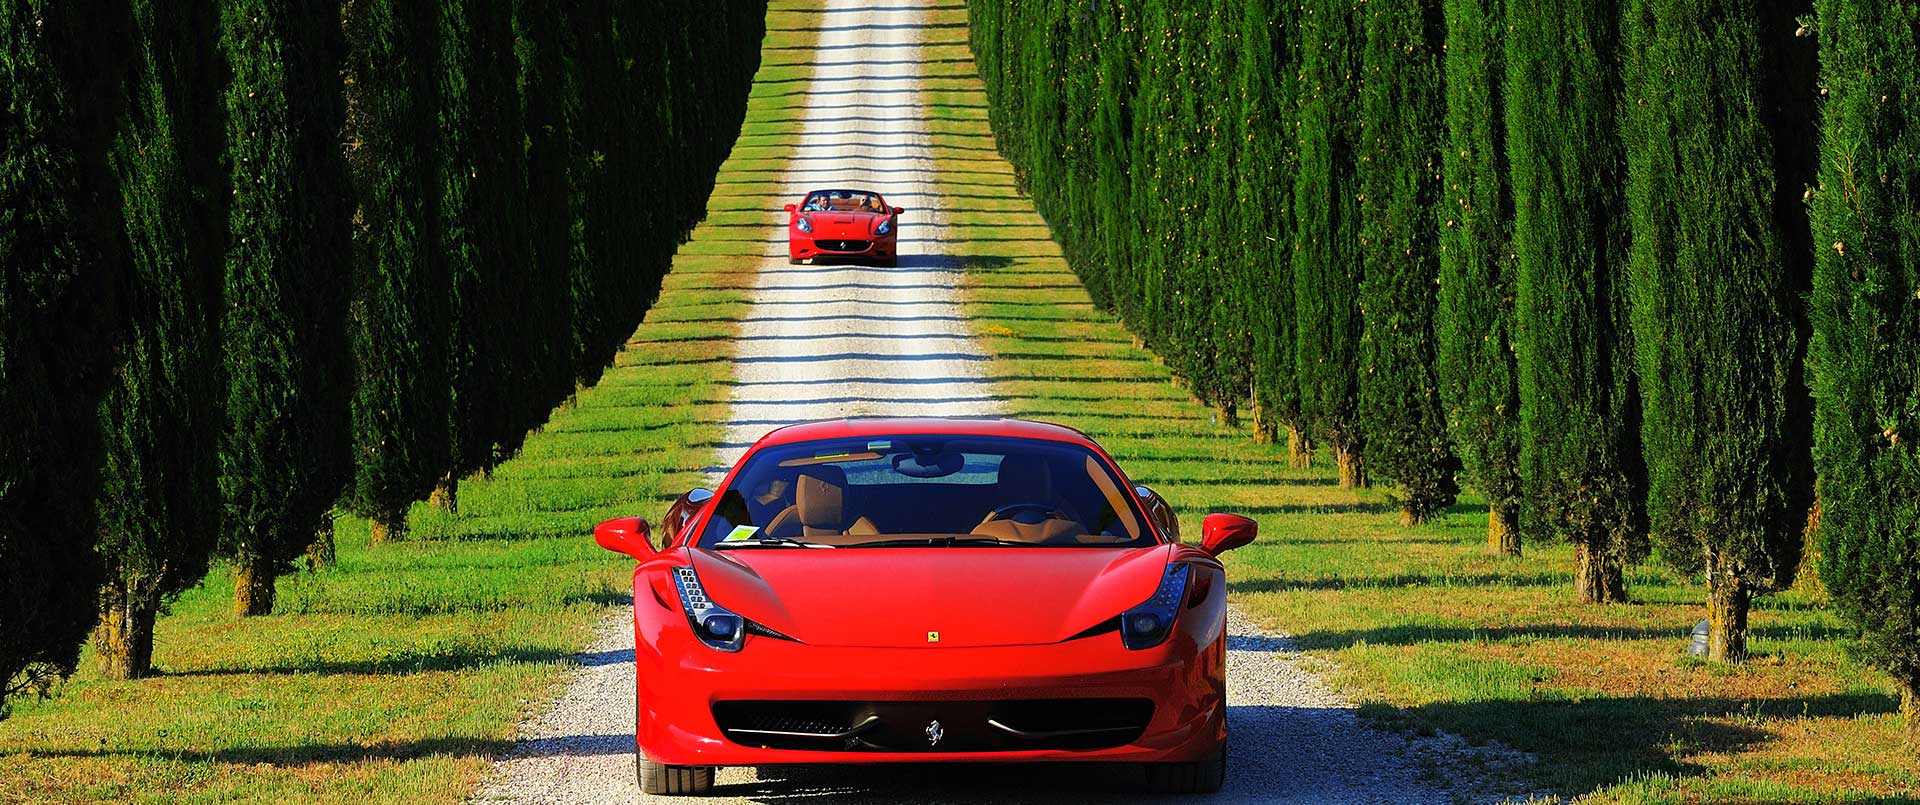 Ferrari Self-Drive in Italy